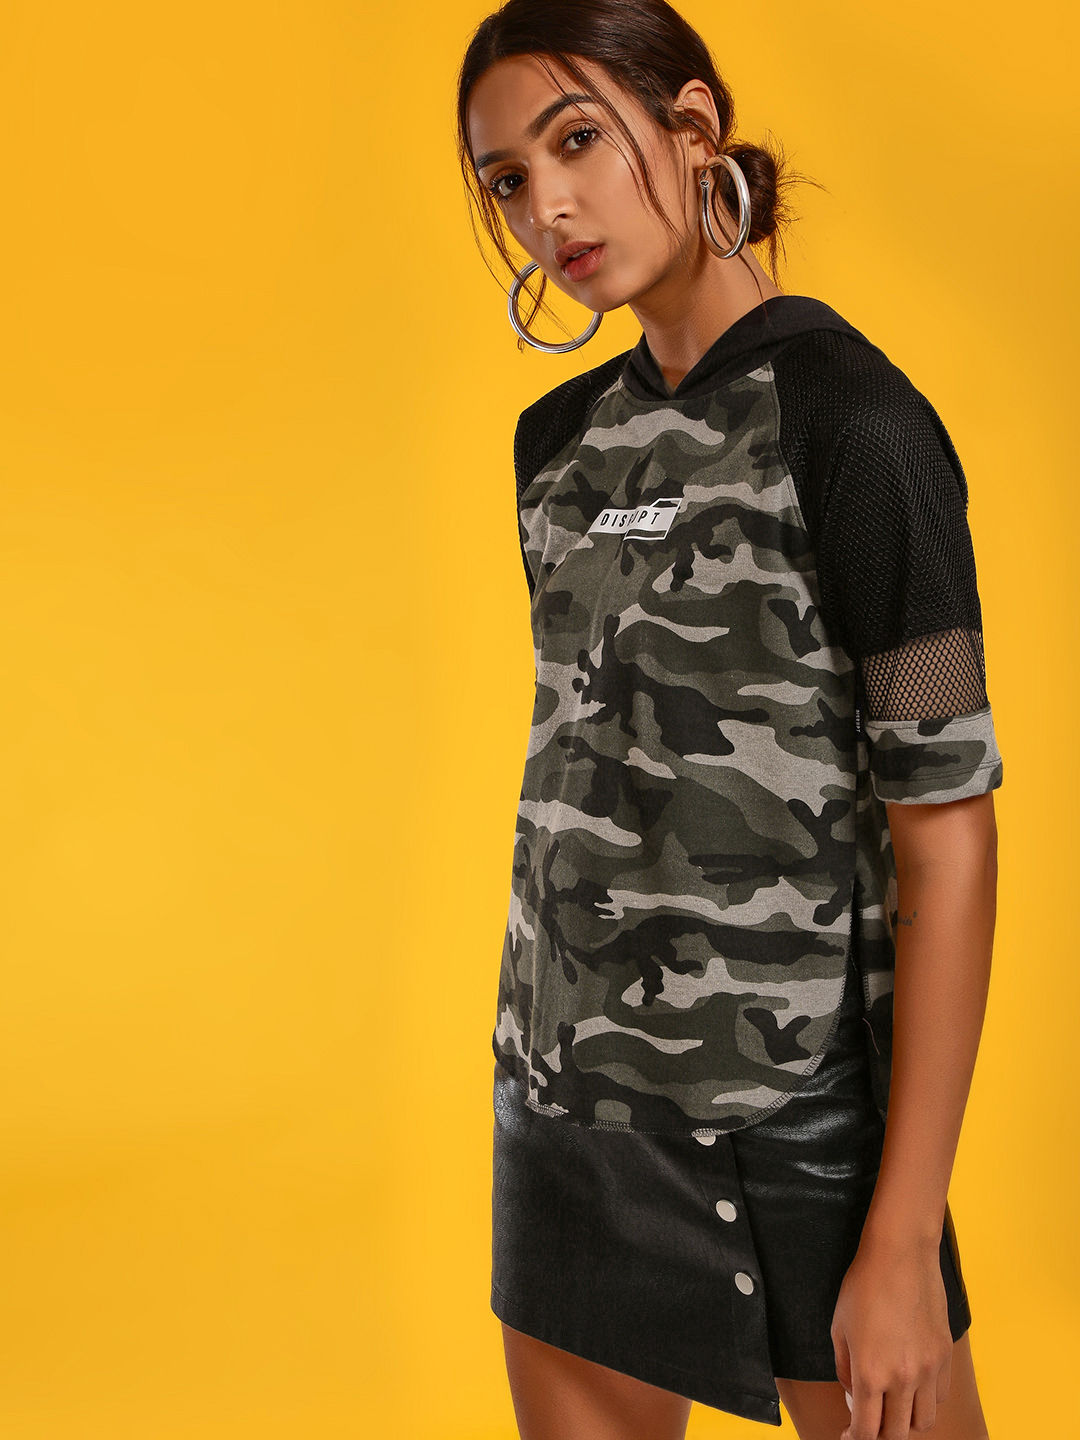 Disrupt Multi Mesh Camo Text Print Hoodie 1